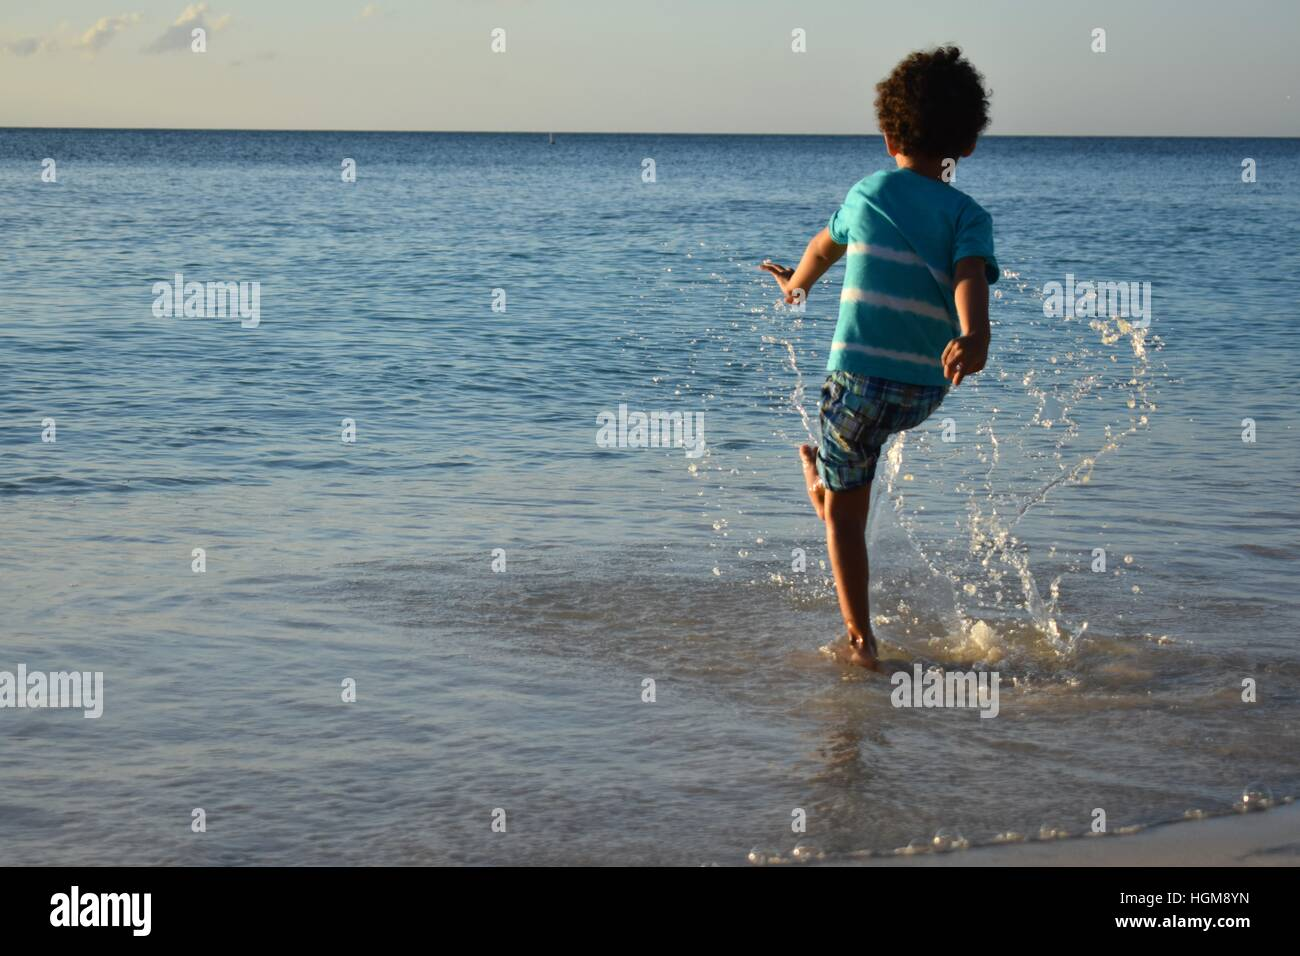 Boy playing in the waves Stock Photo